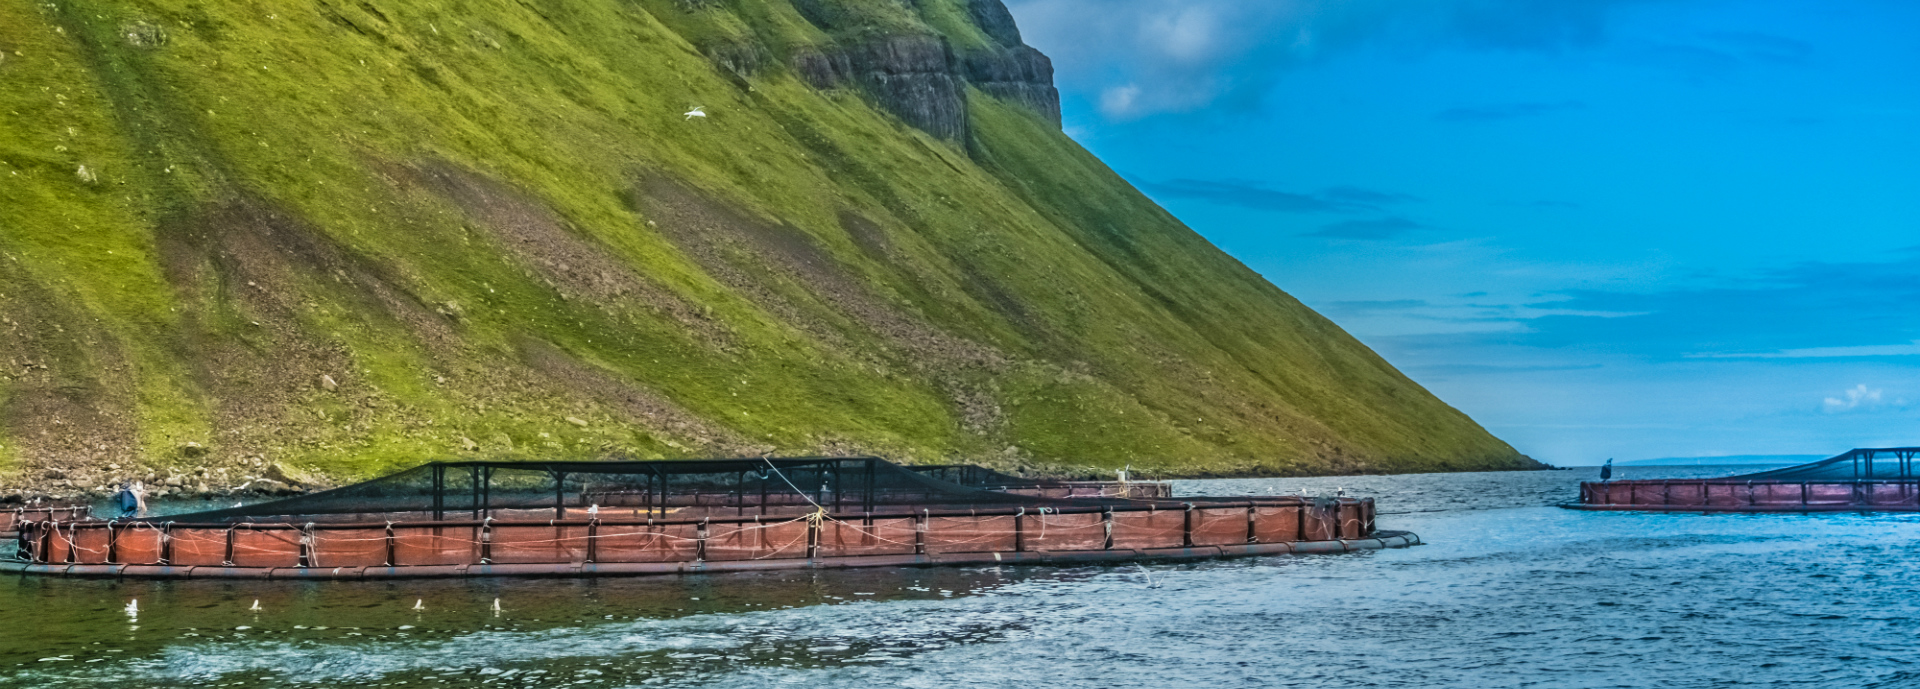 Salmon farm, Scotland